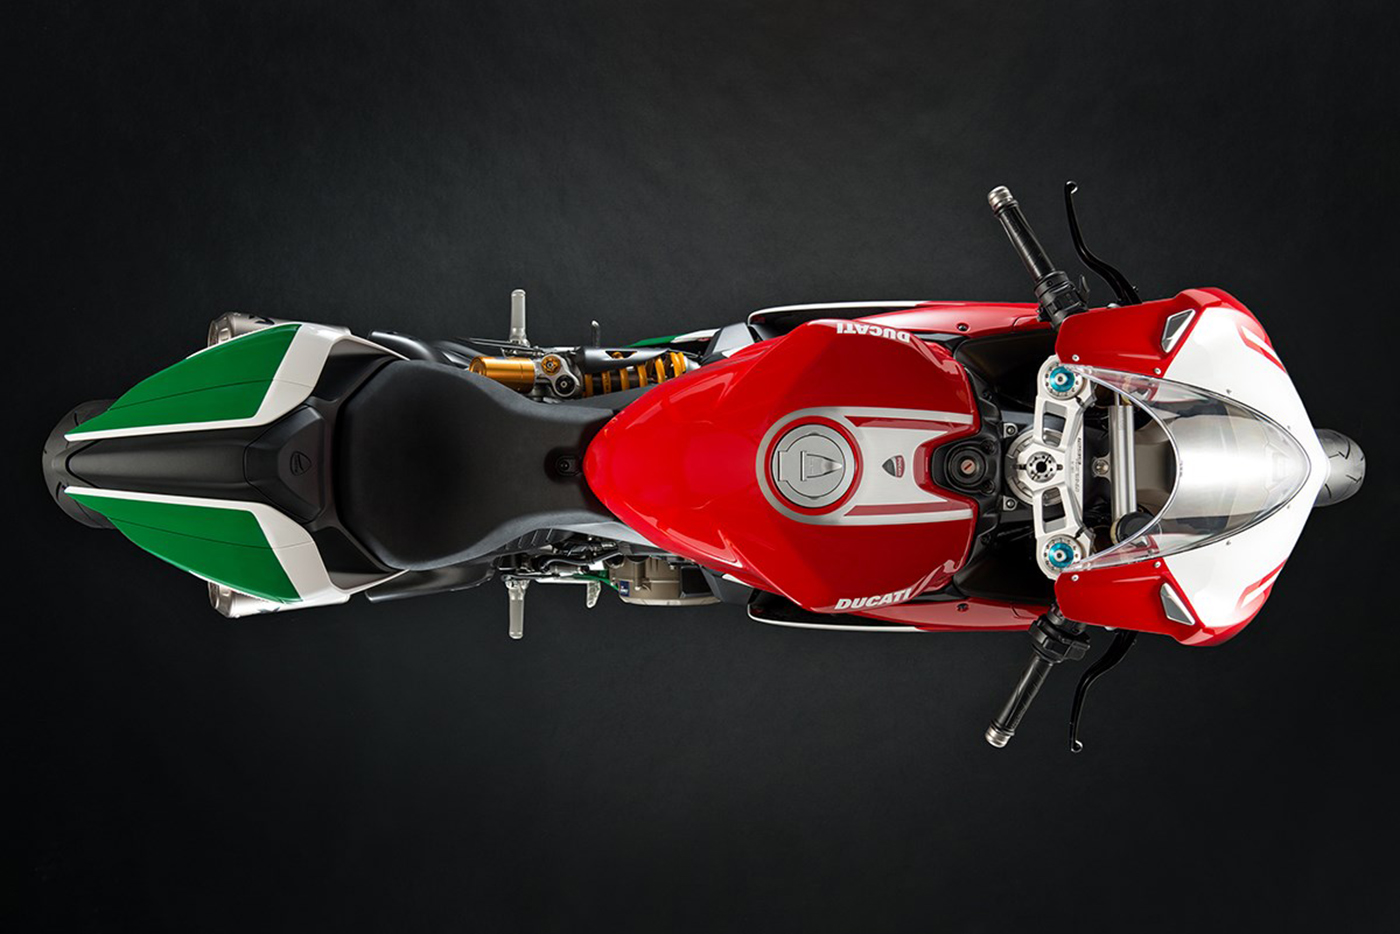 ducati-1299-panigale-r-final-edition-18.jpg